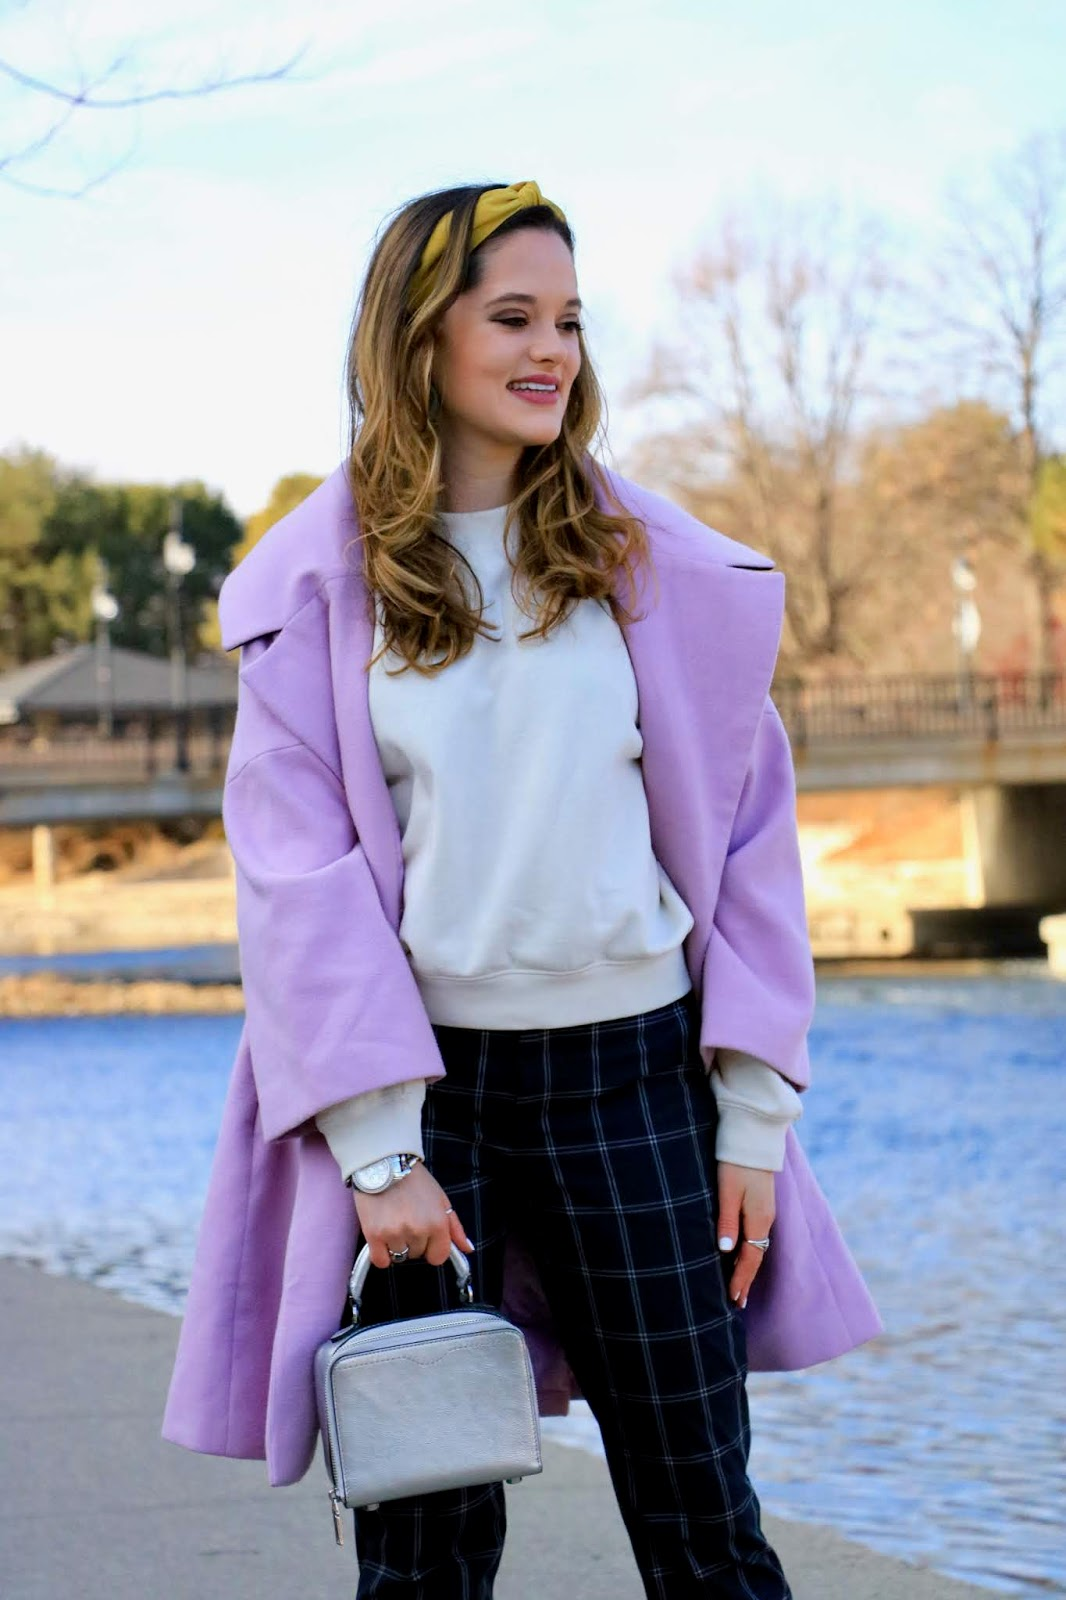 Nyc fashion blogger Kathleen Harper's 2019 winter street style